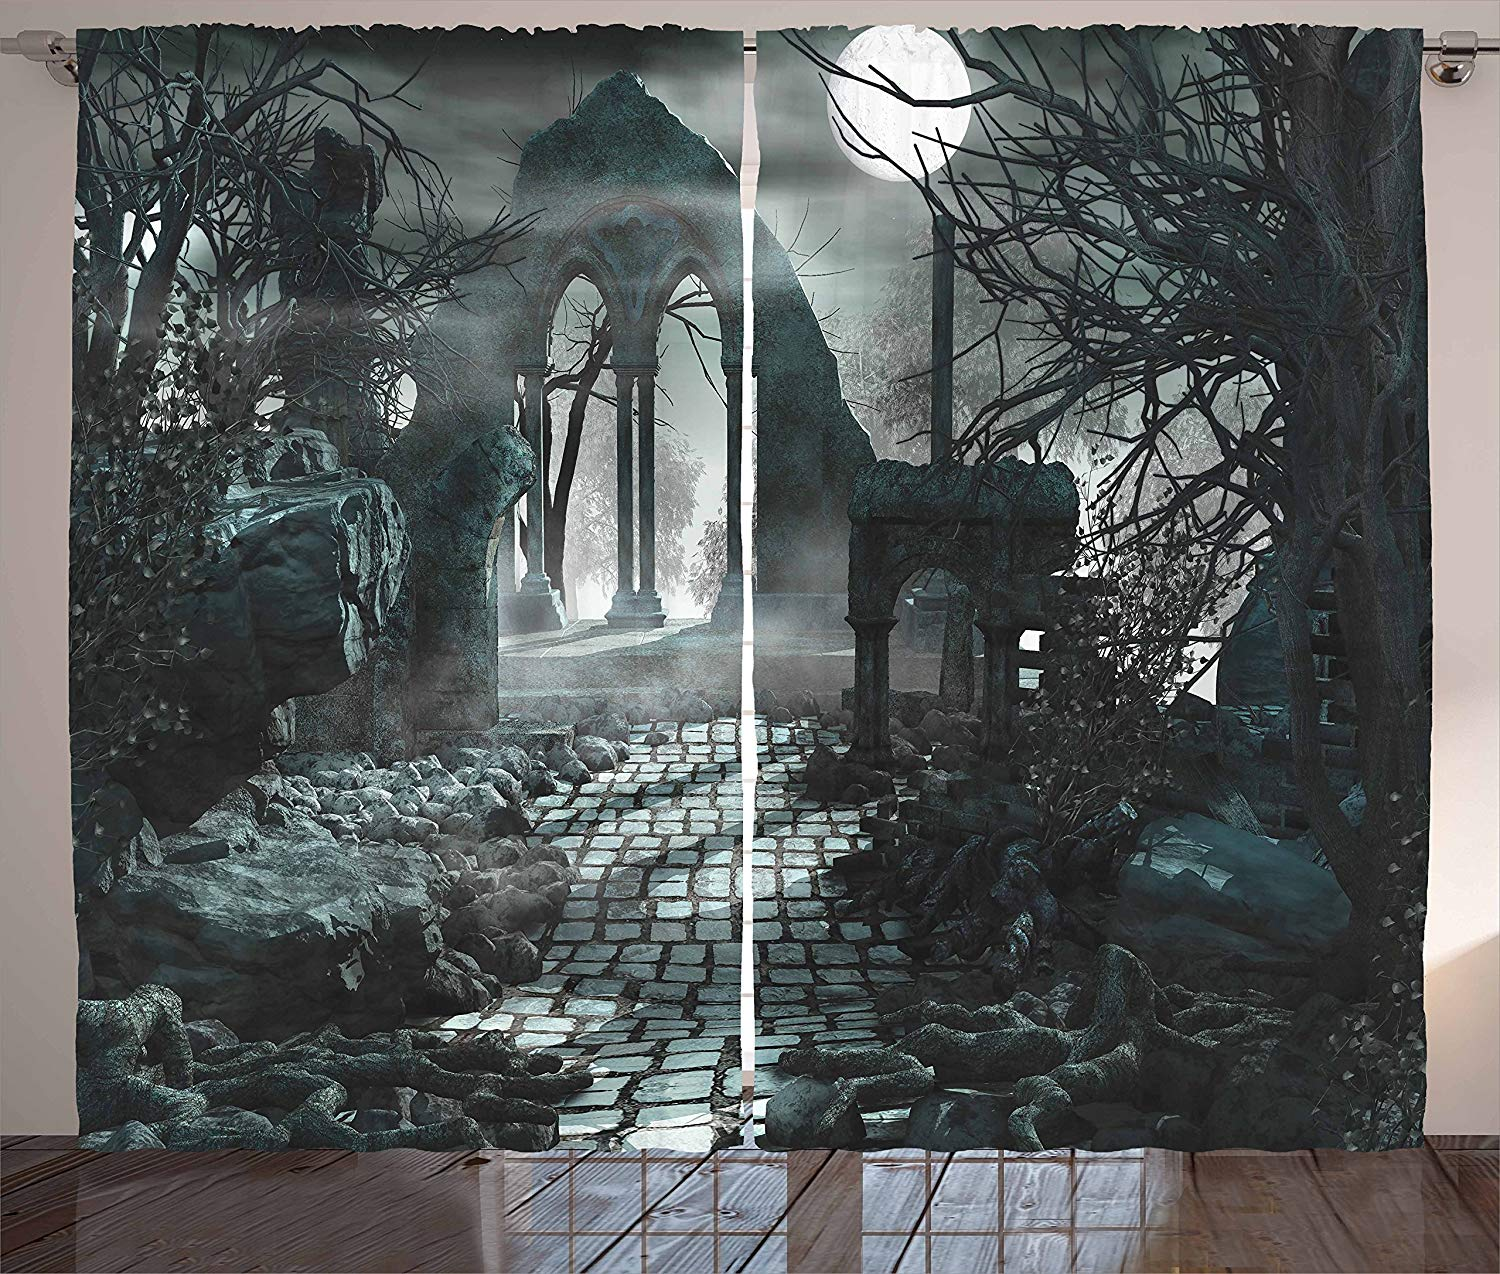 Gothic Decor Curtains Full Moon Light Over Medieval Temple Ruins At Night Dark Scary Backdrop Image Living Room Bedroom Window